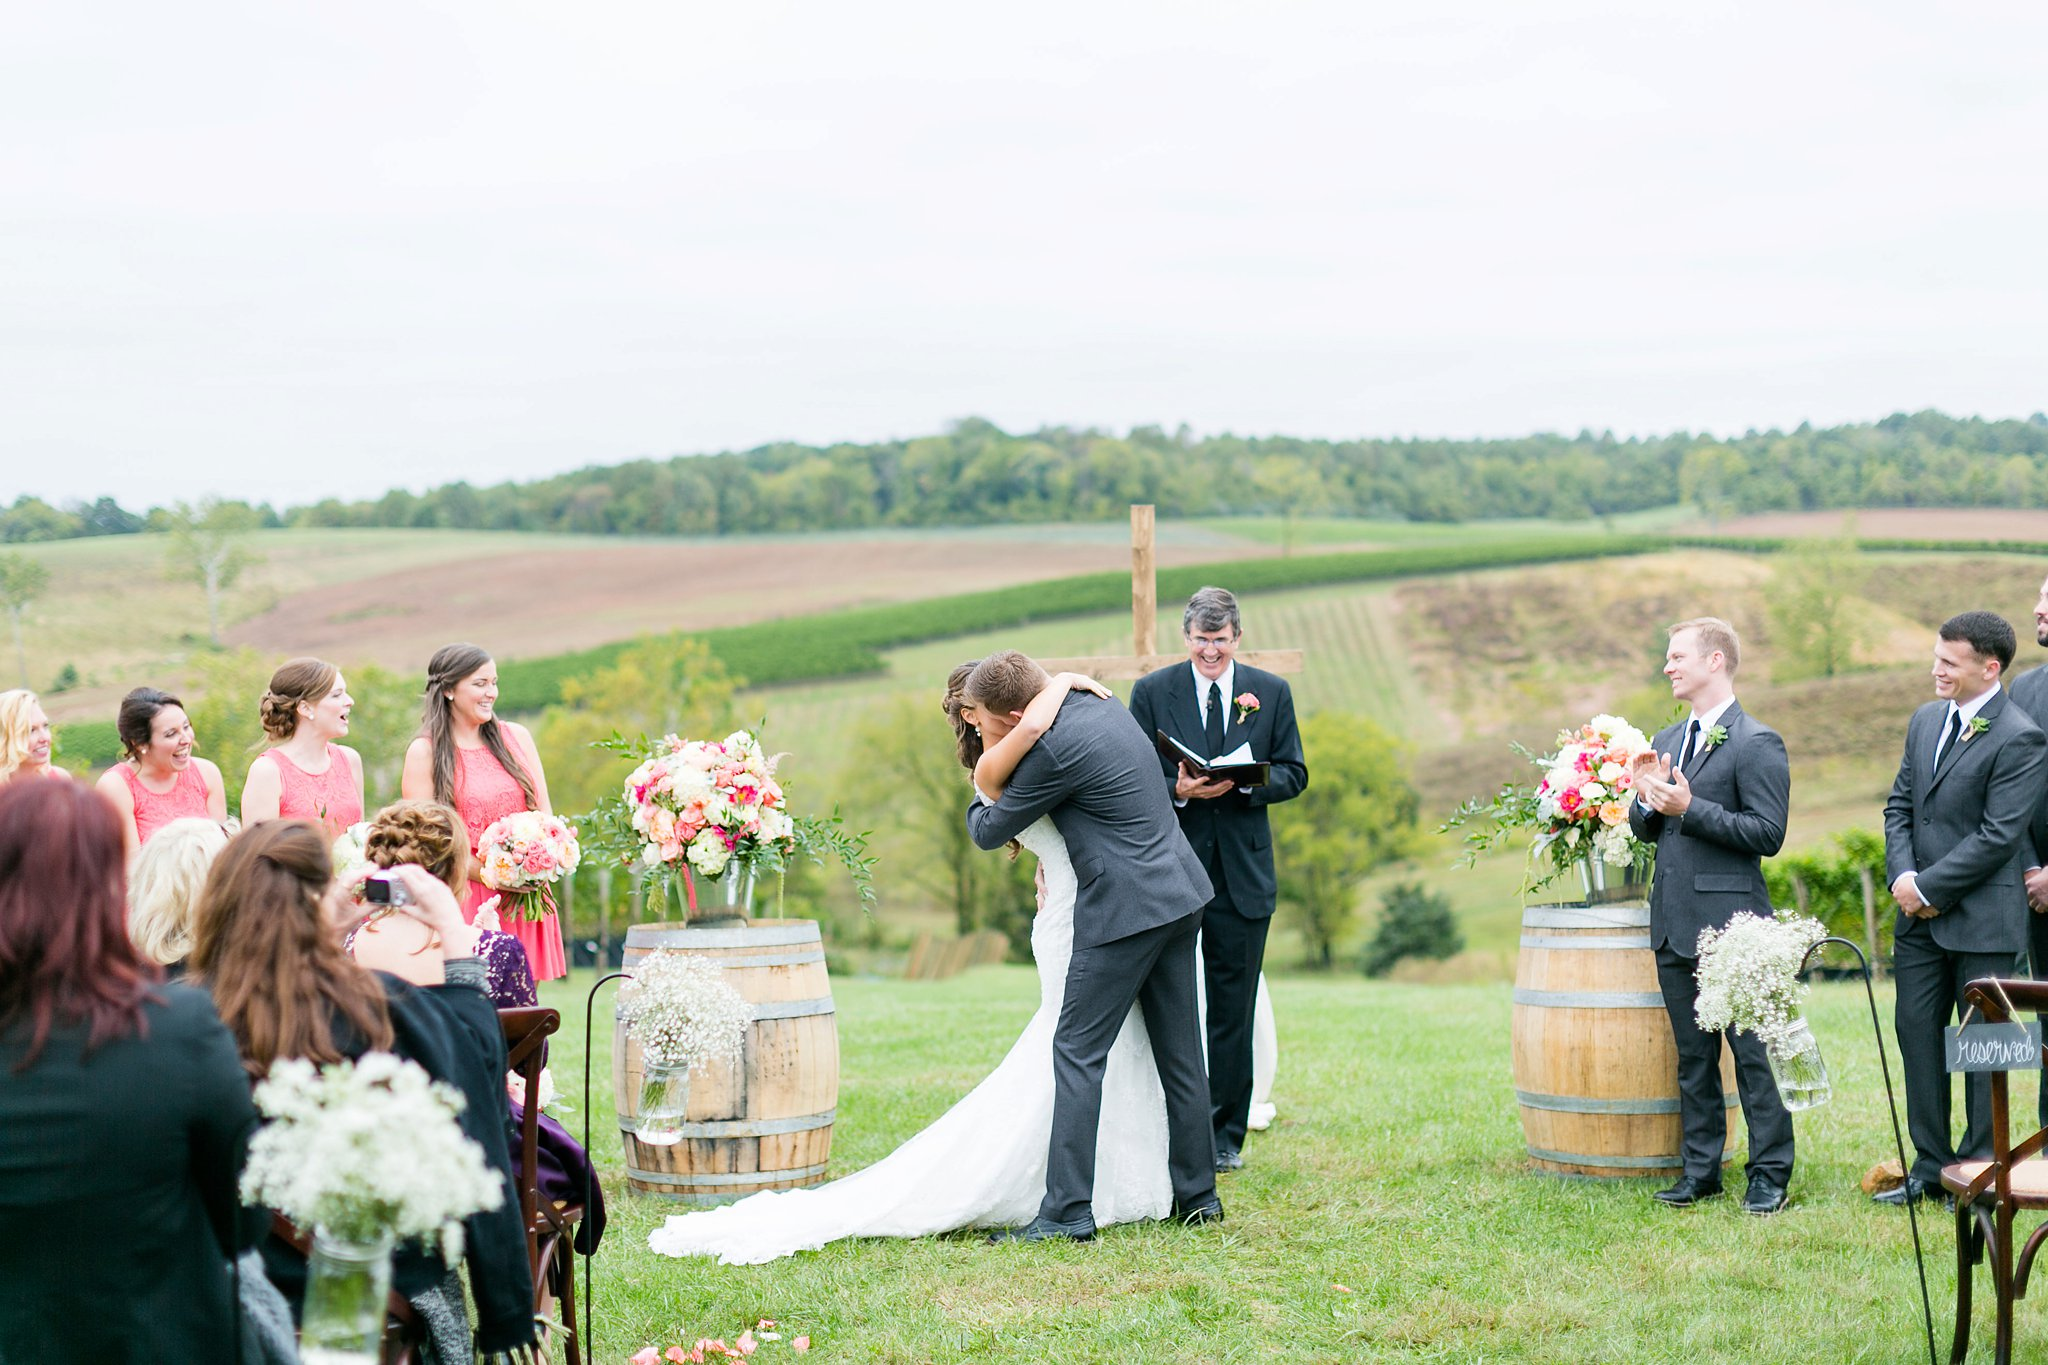 Stone Tower Winery Wedding Photos Virginia Wedding Photographer Megan Kelsey Photography Sam & Angela-160.jpg